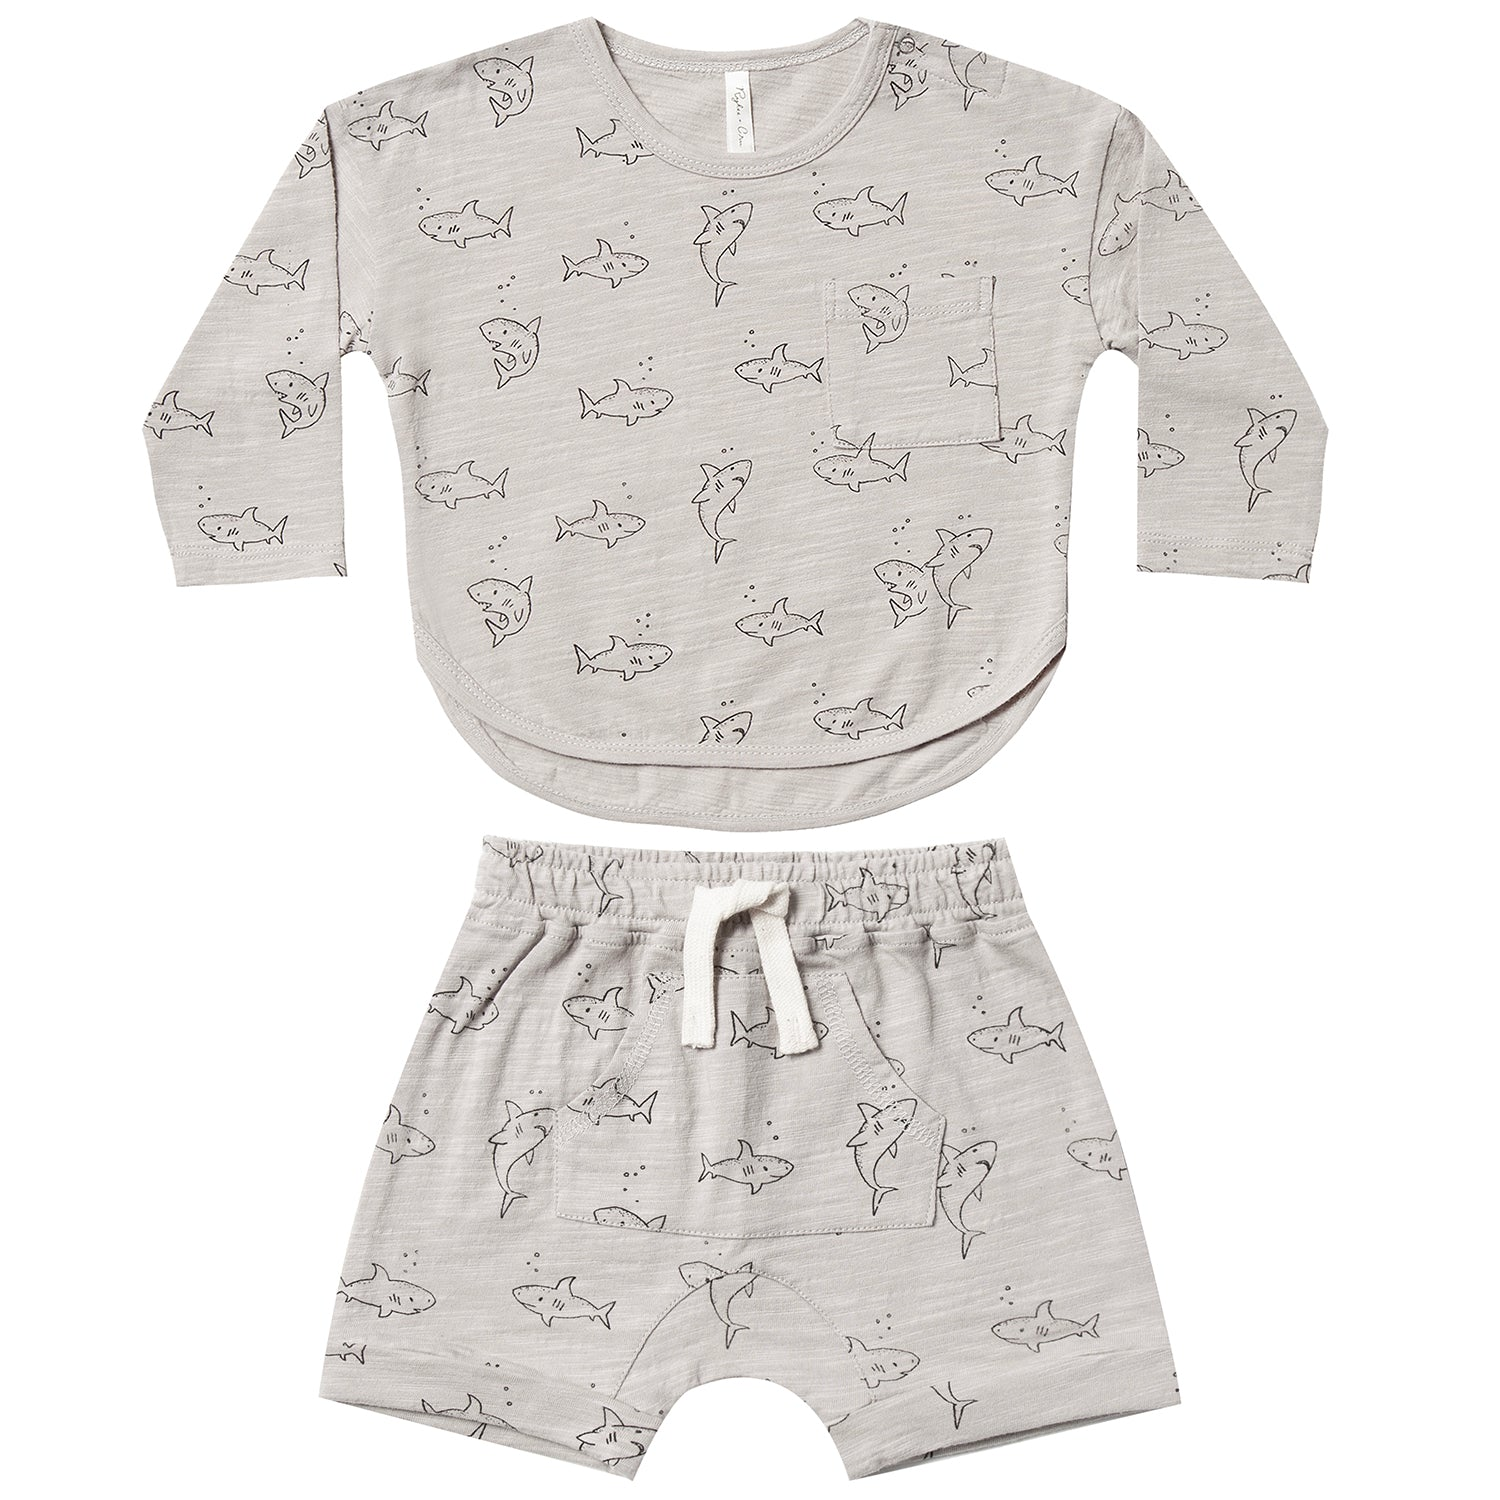 yoya, kids, baby, boys, rylee and cru, summer, casual, lounge, graphic printed, long sleeved, t-shirt, pull on, shorts, outfit set